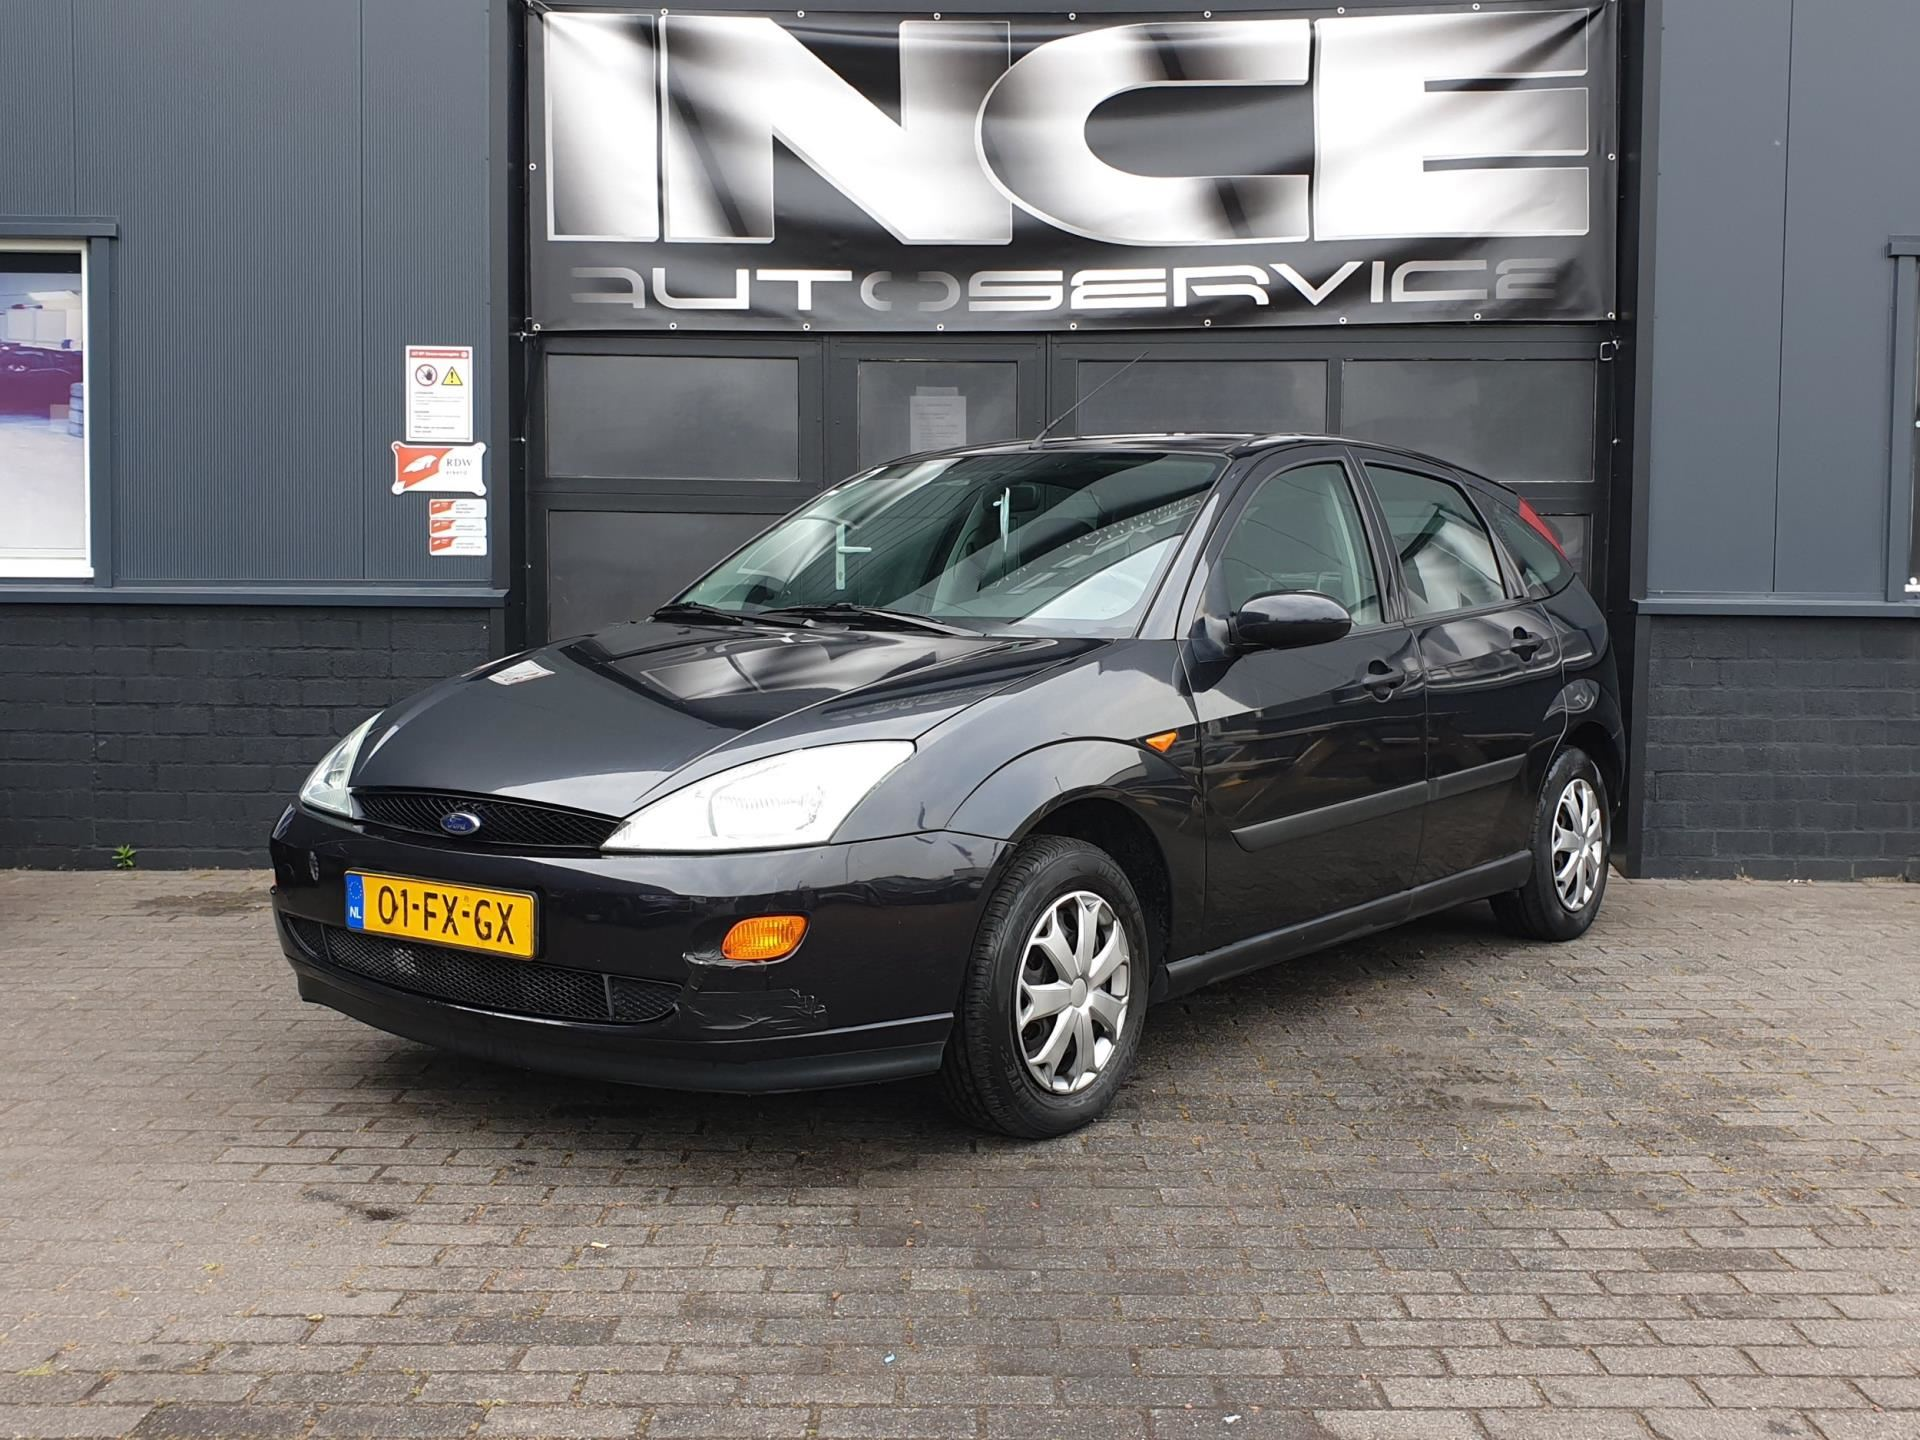 Ford Focus occasion - Ince Autoservice